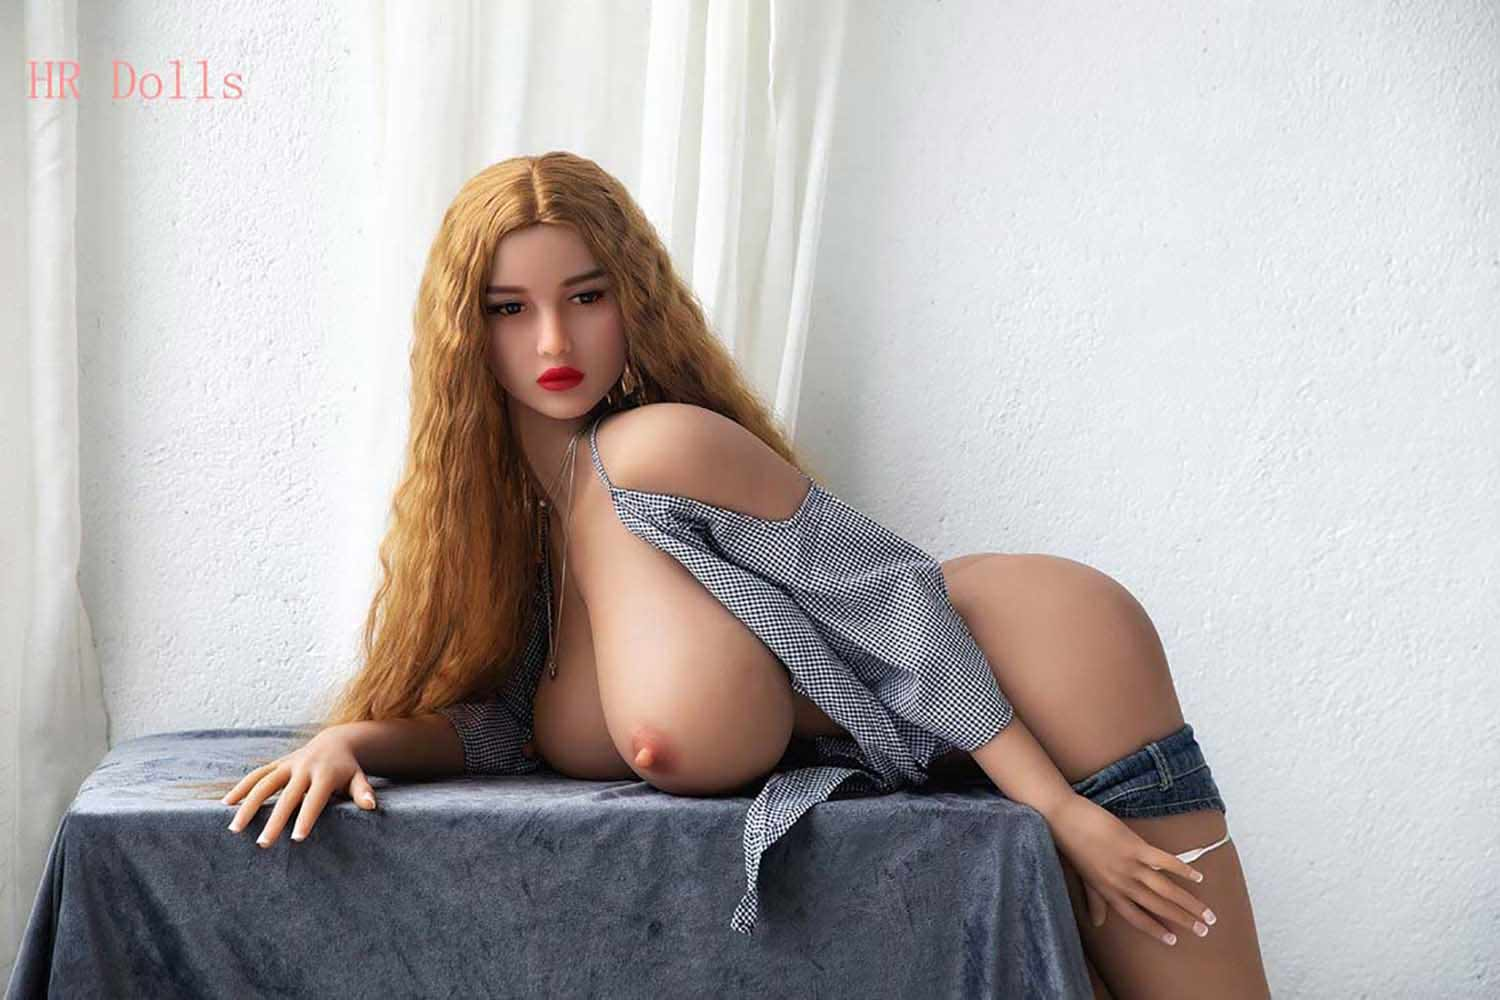 The sex doll with his clothes on the table